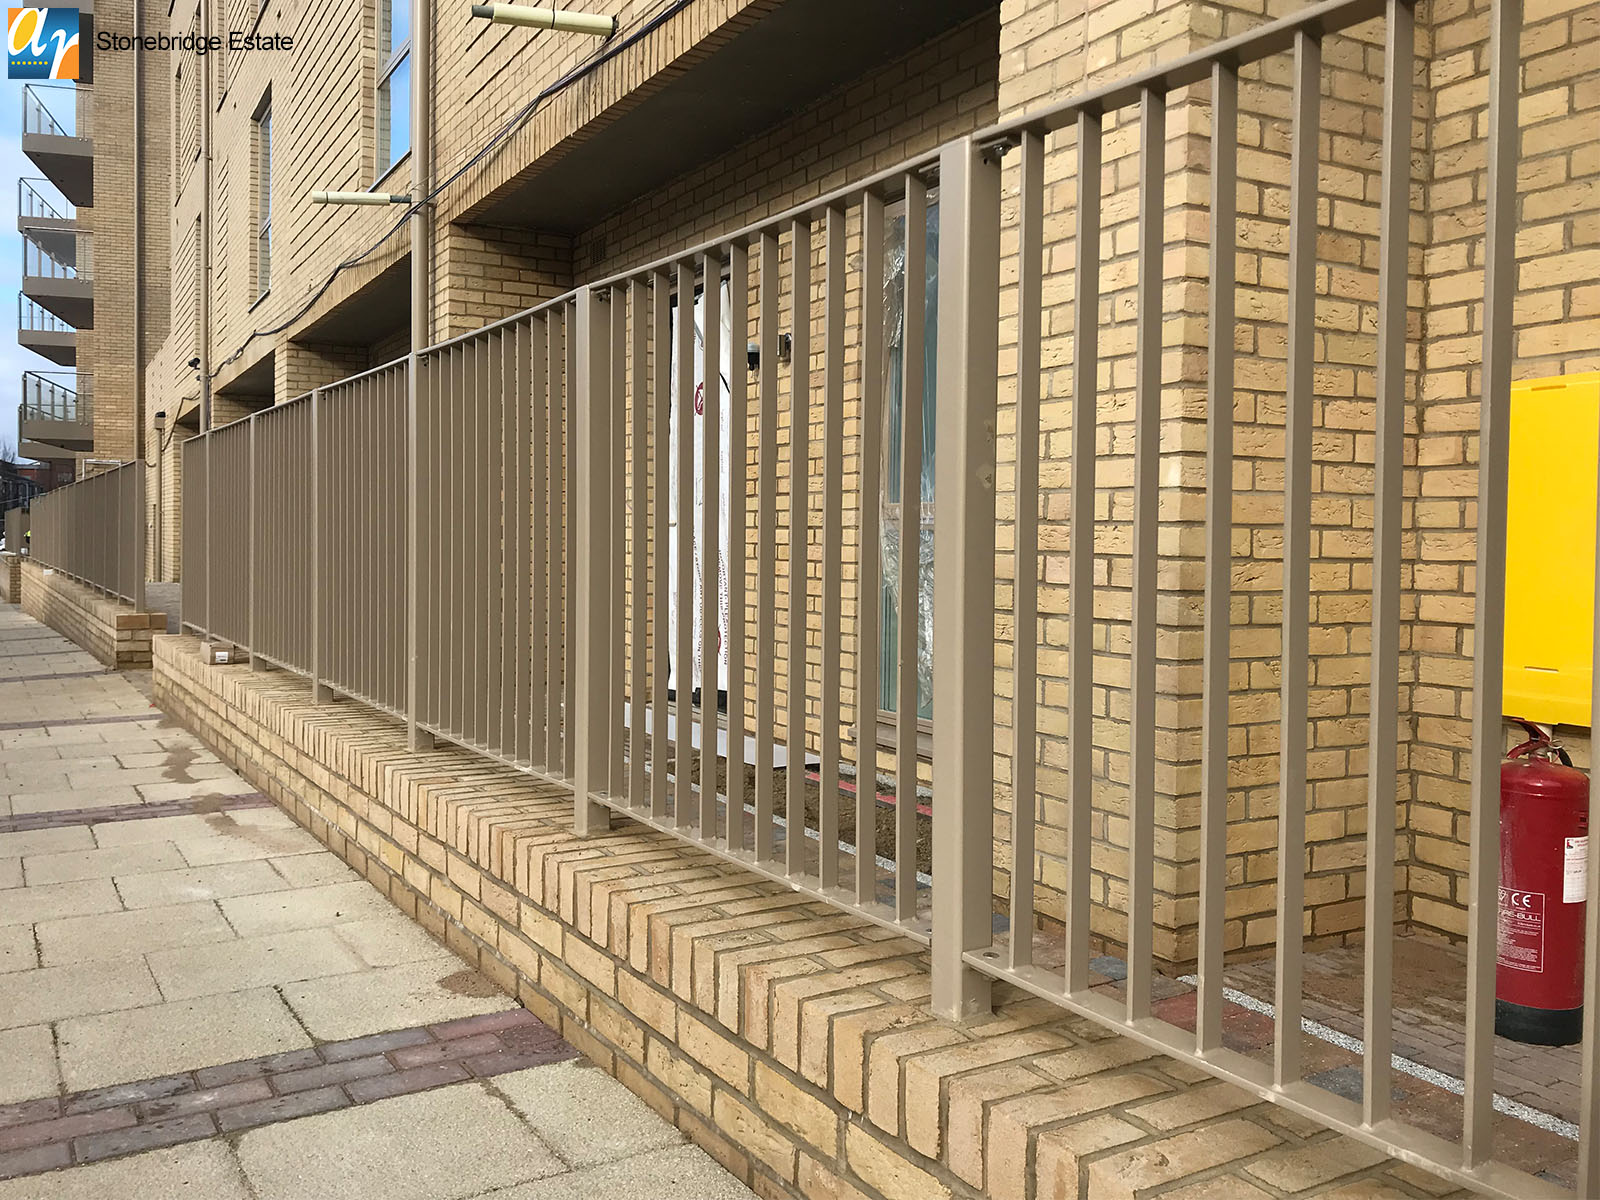 Stonebridge Estate flat bar infill railings